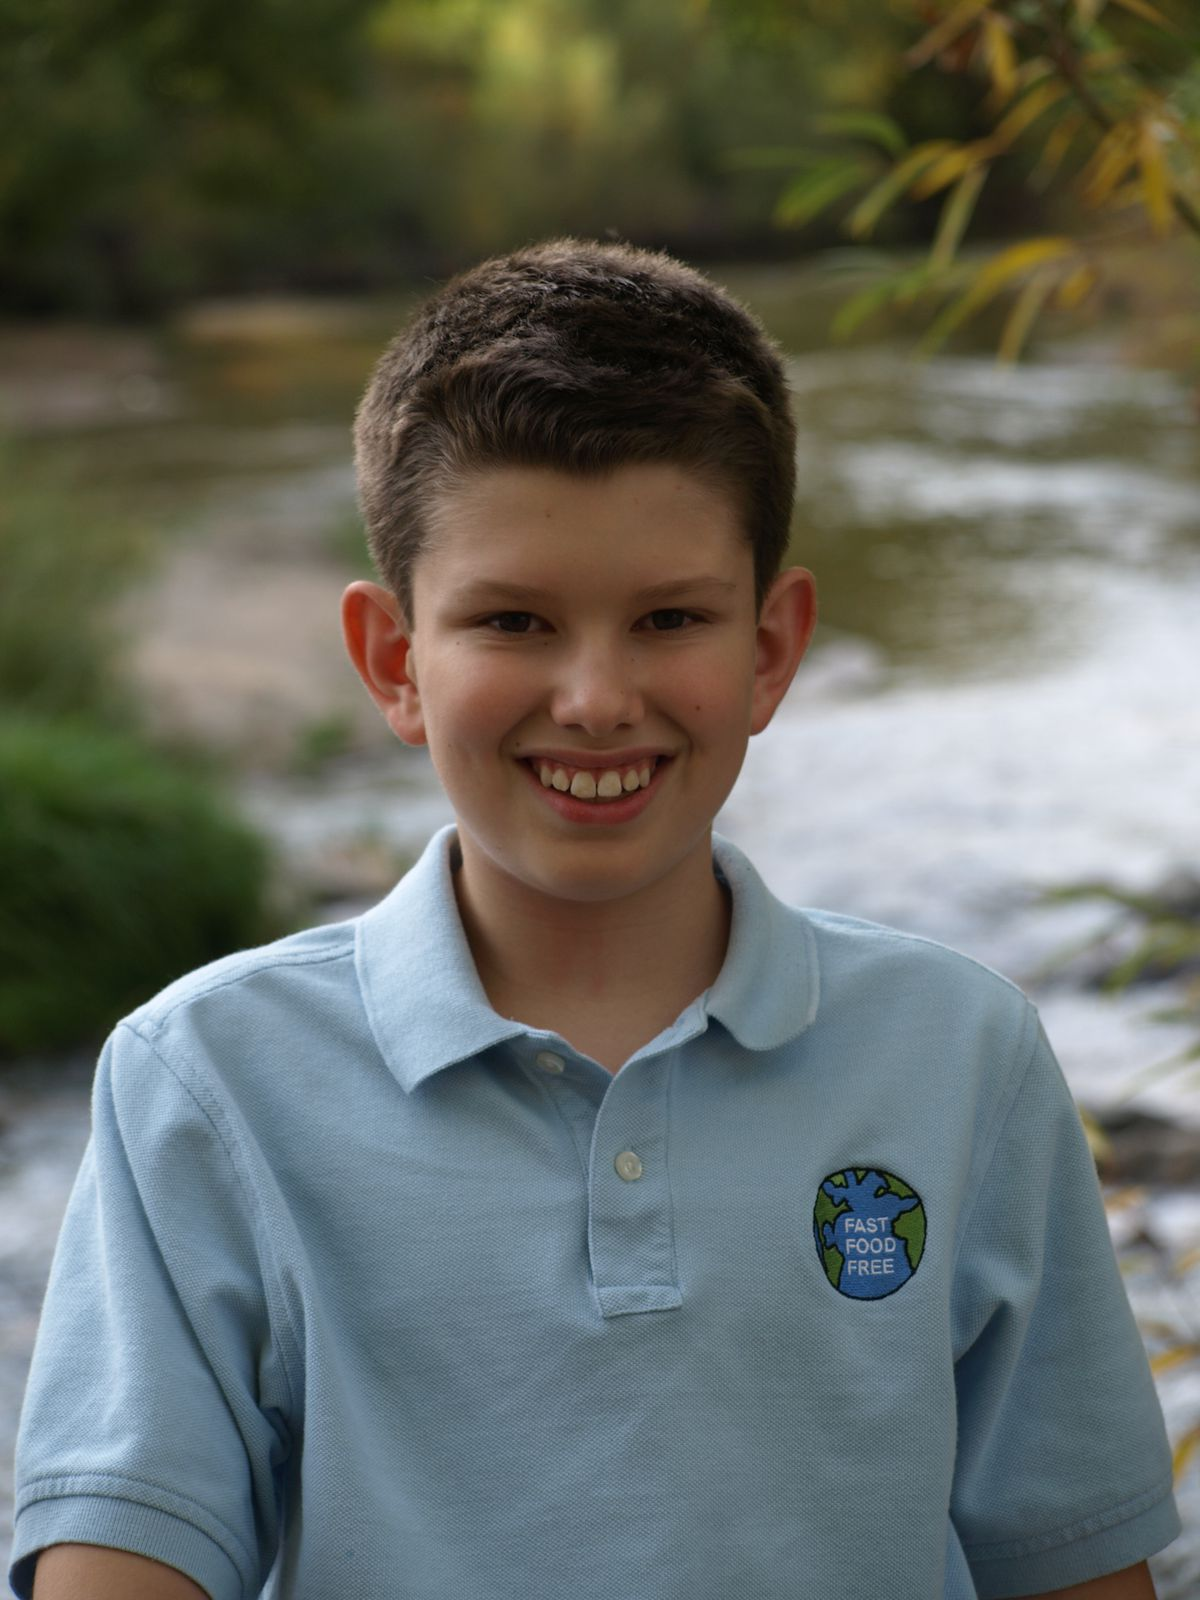 Koa Halpern, now 13, was just 10 when he launched his organization, Fast Food Free.